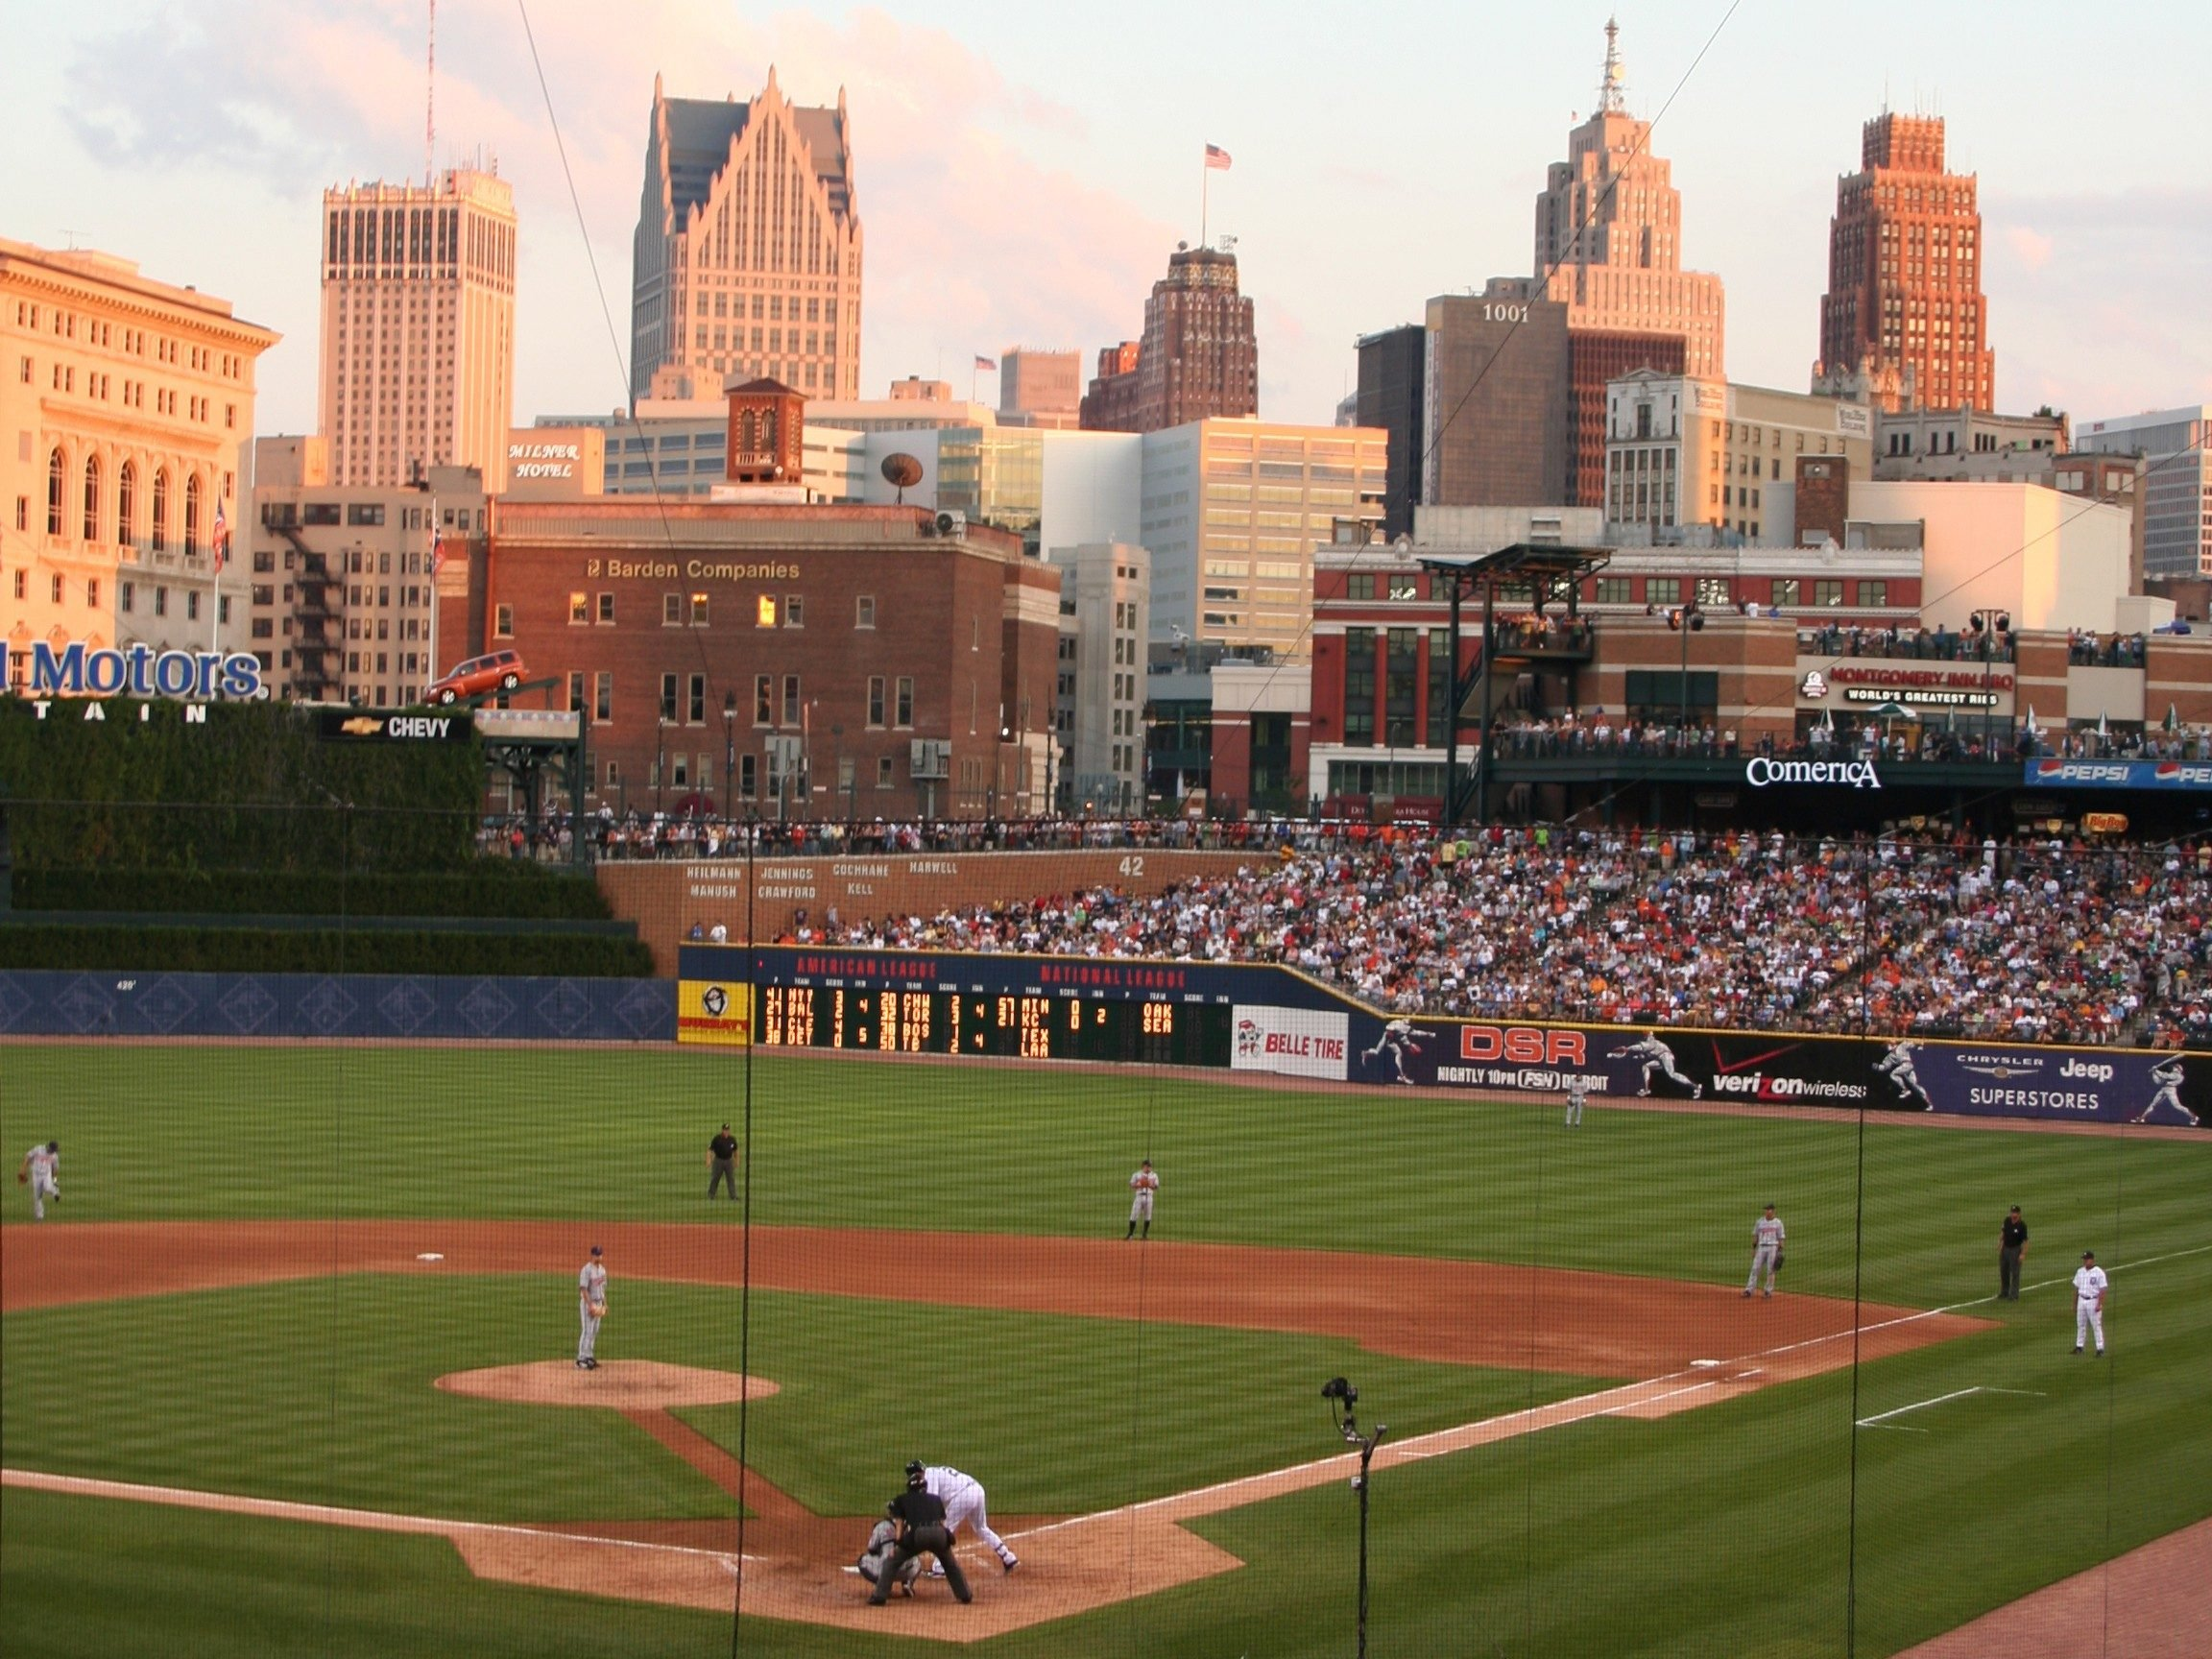 7. Comerica Park - Detroit, Michigan; home of the Tigers.